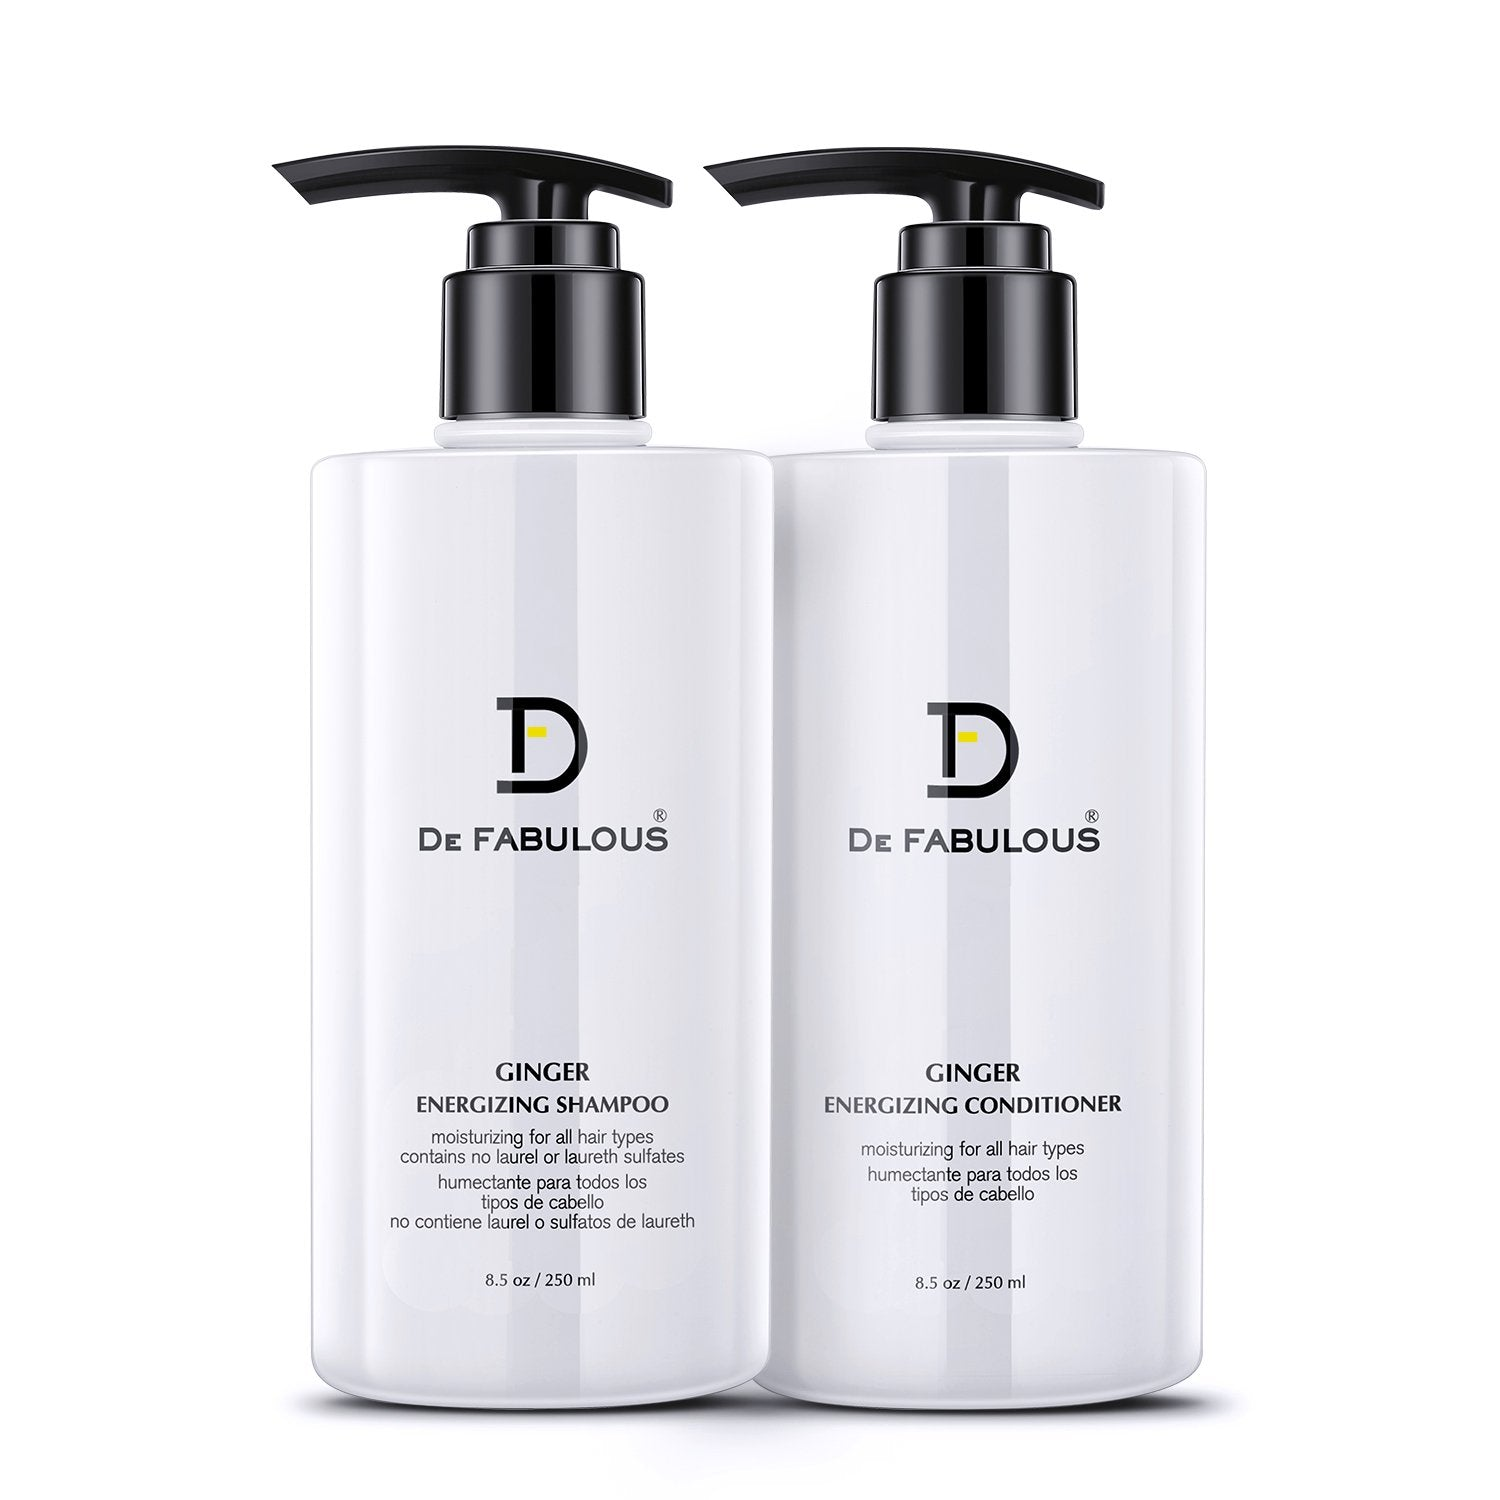 De Fabulous Ginger Energizing Shampoo & Conditioner 250ml Each (Pack of 2)